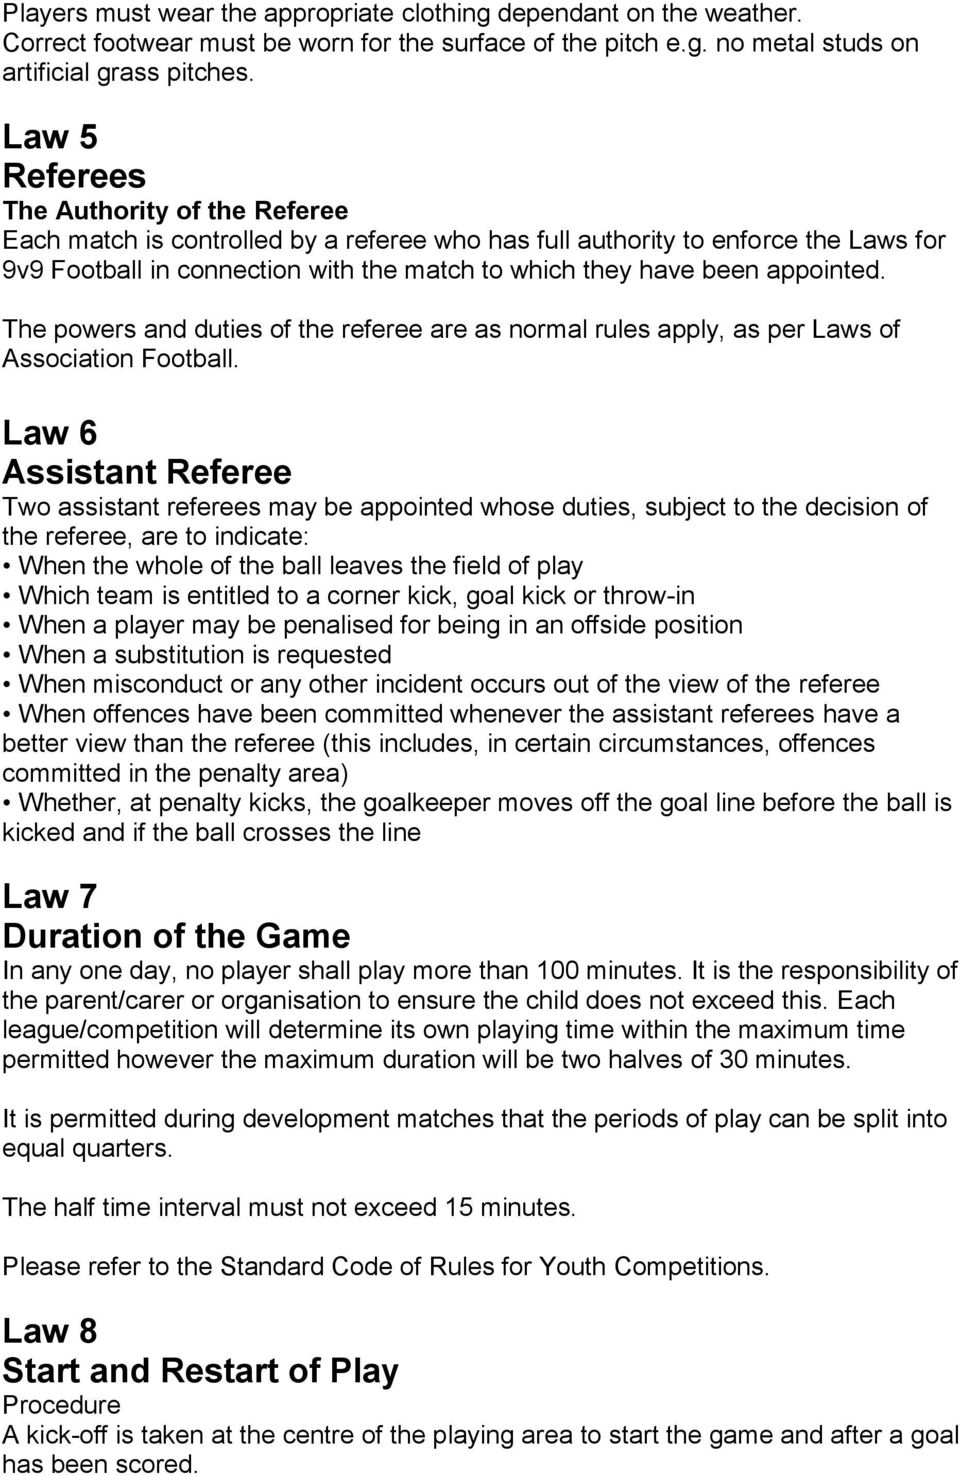 appointed. The powers and duties of the referee are as normal rules apply, as per Laws of Association Football.